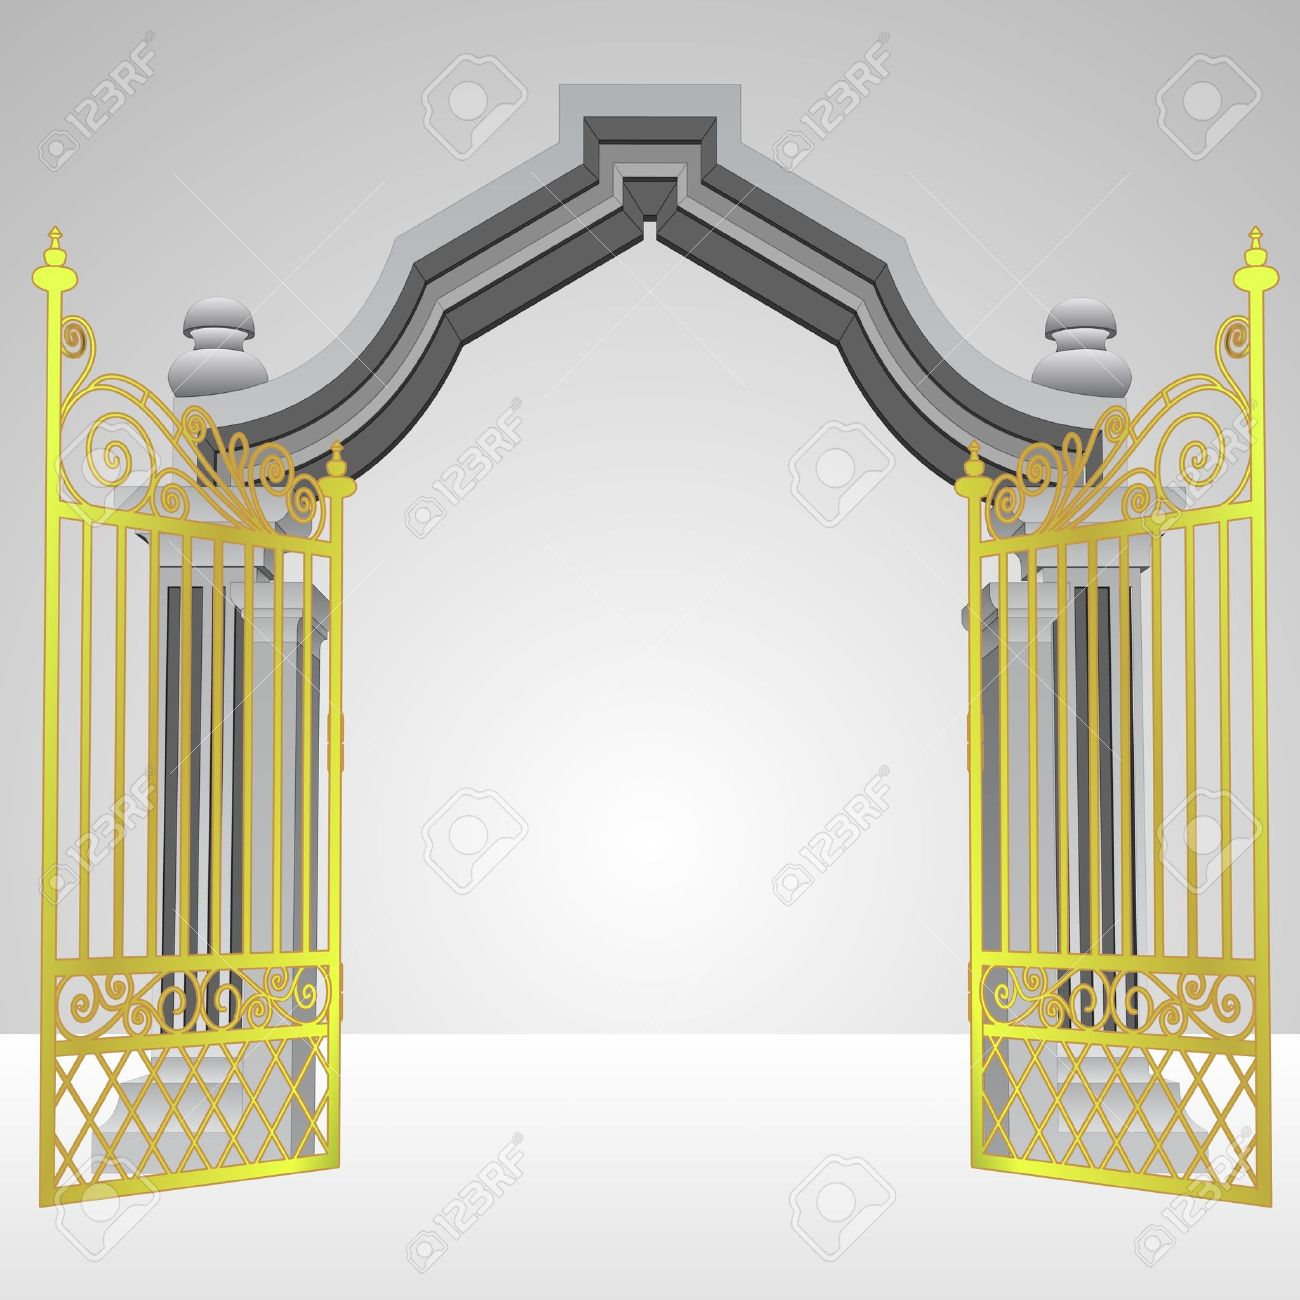 heavenly gate with open gold fence vector illustration royalty free